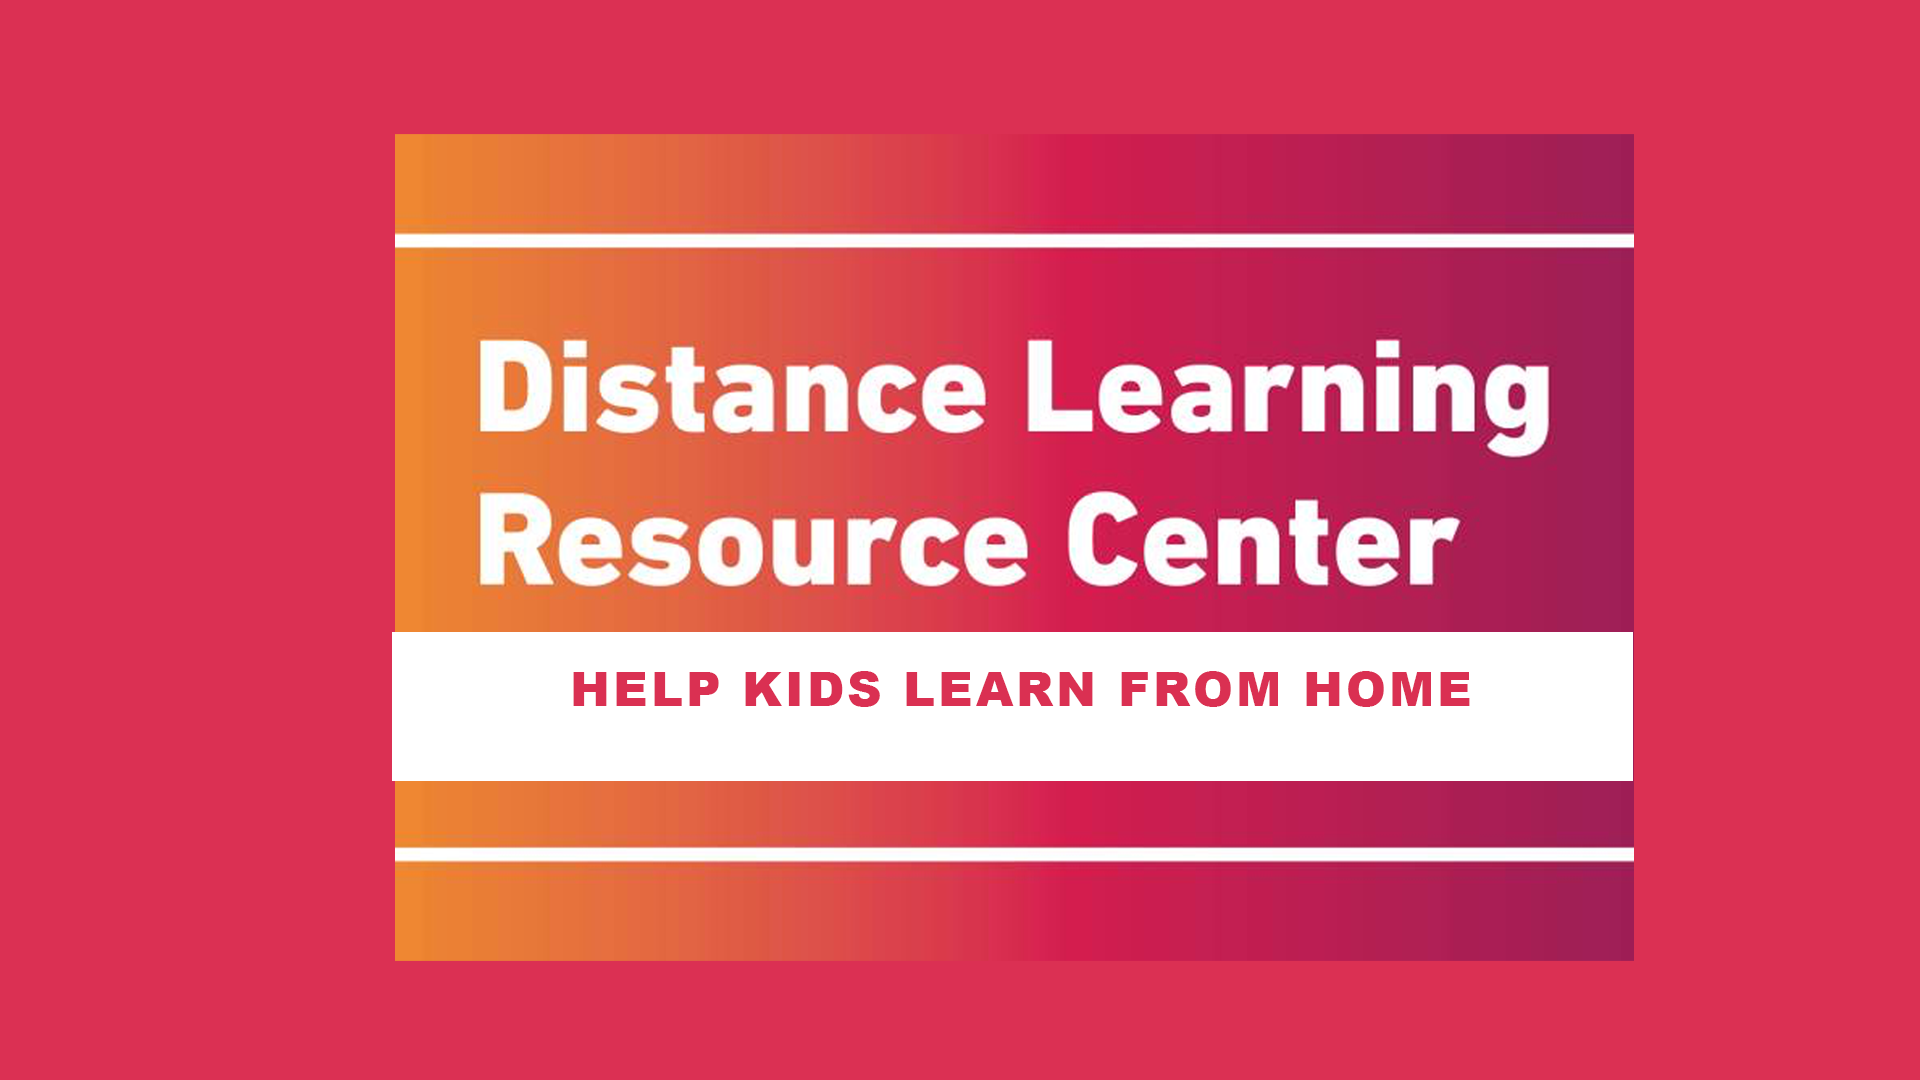 CLICK HERE FOR RESOURCES TO HELP KIDS LEARN AT HOME